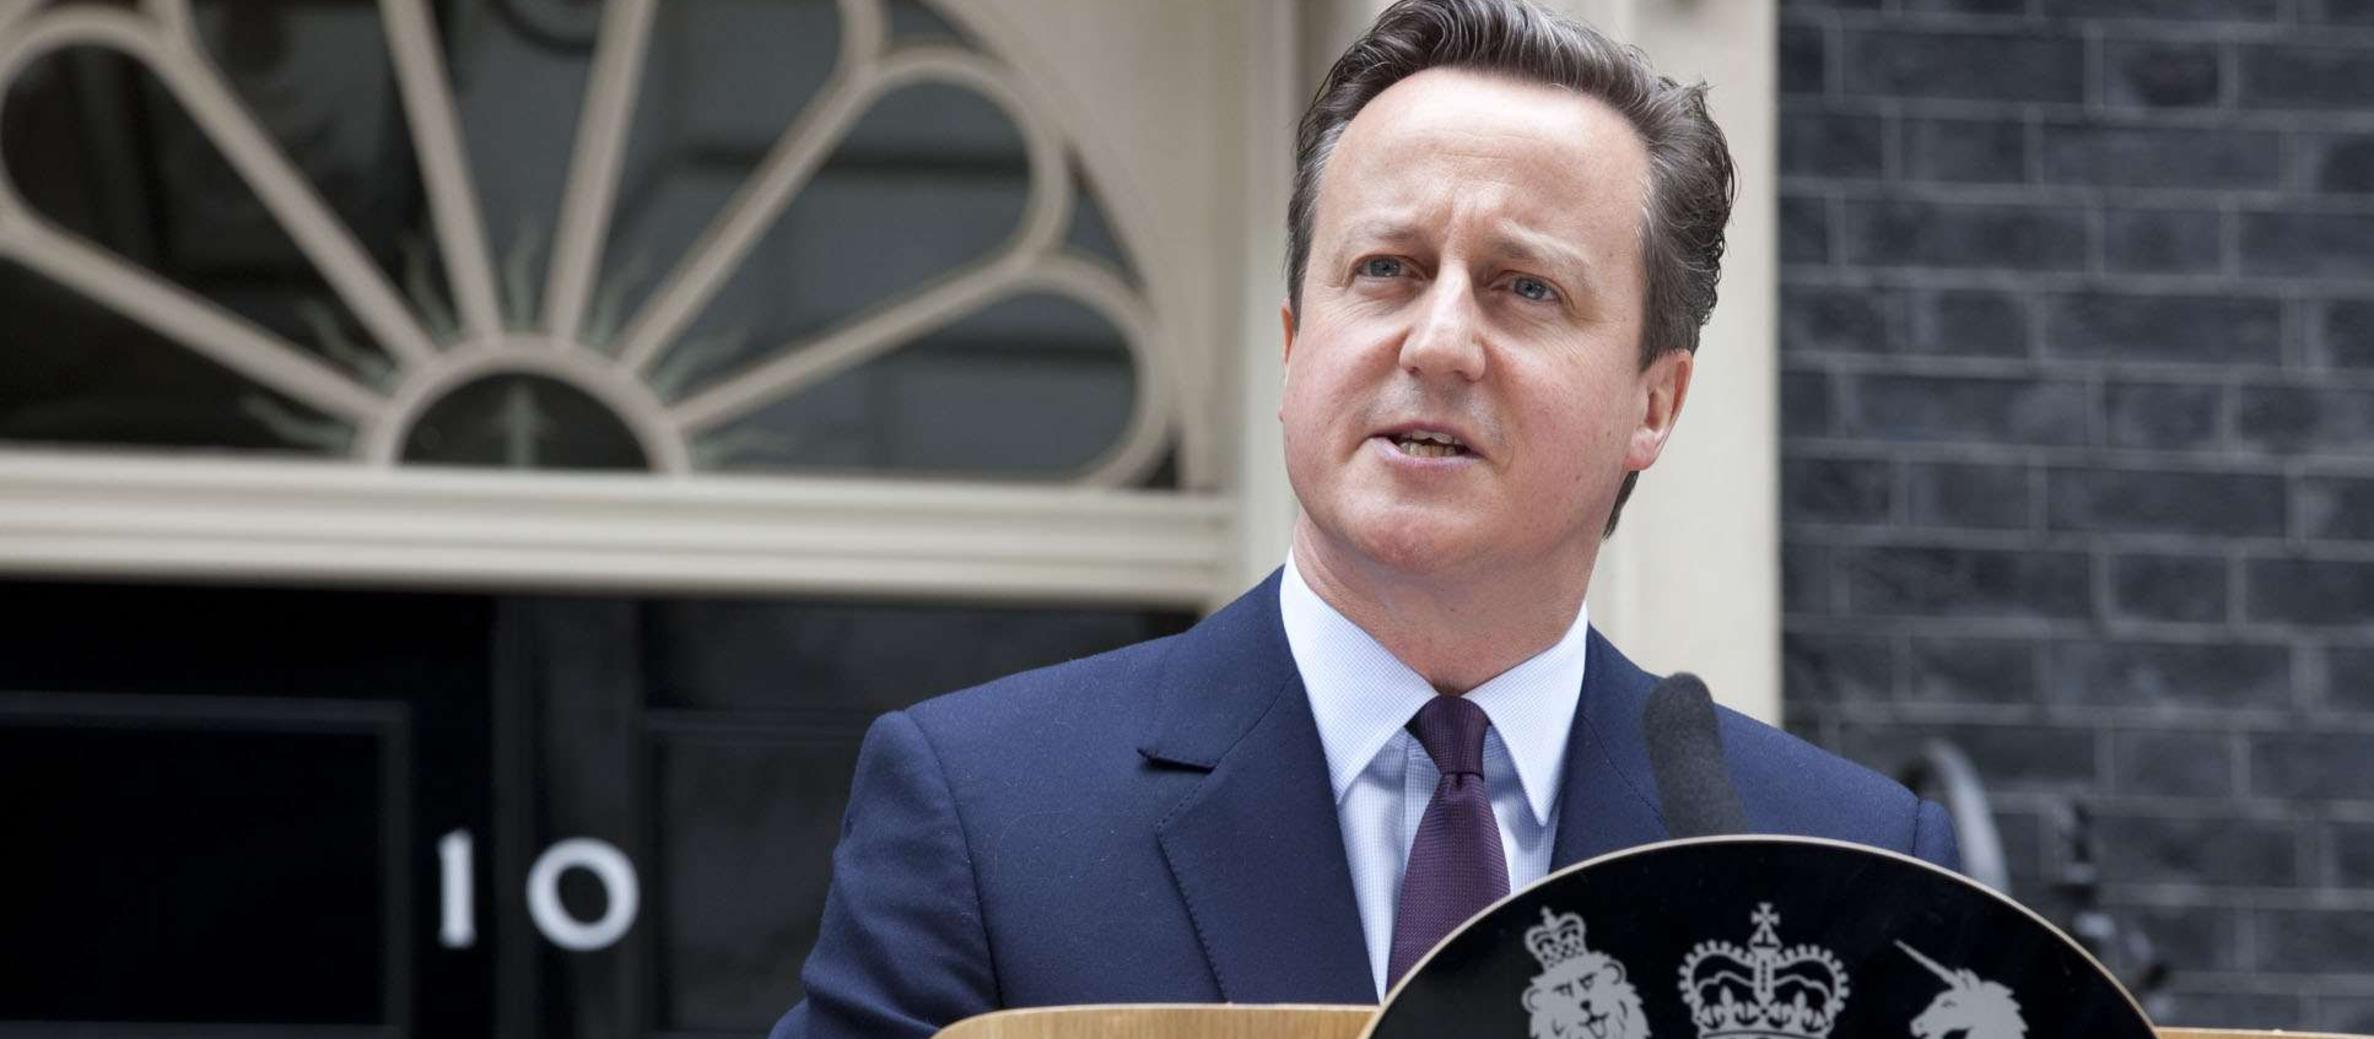 UK: Supporters of Israel promoted in  PM Cameron's new Cabinet